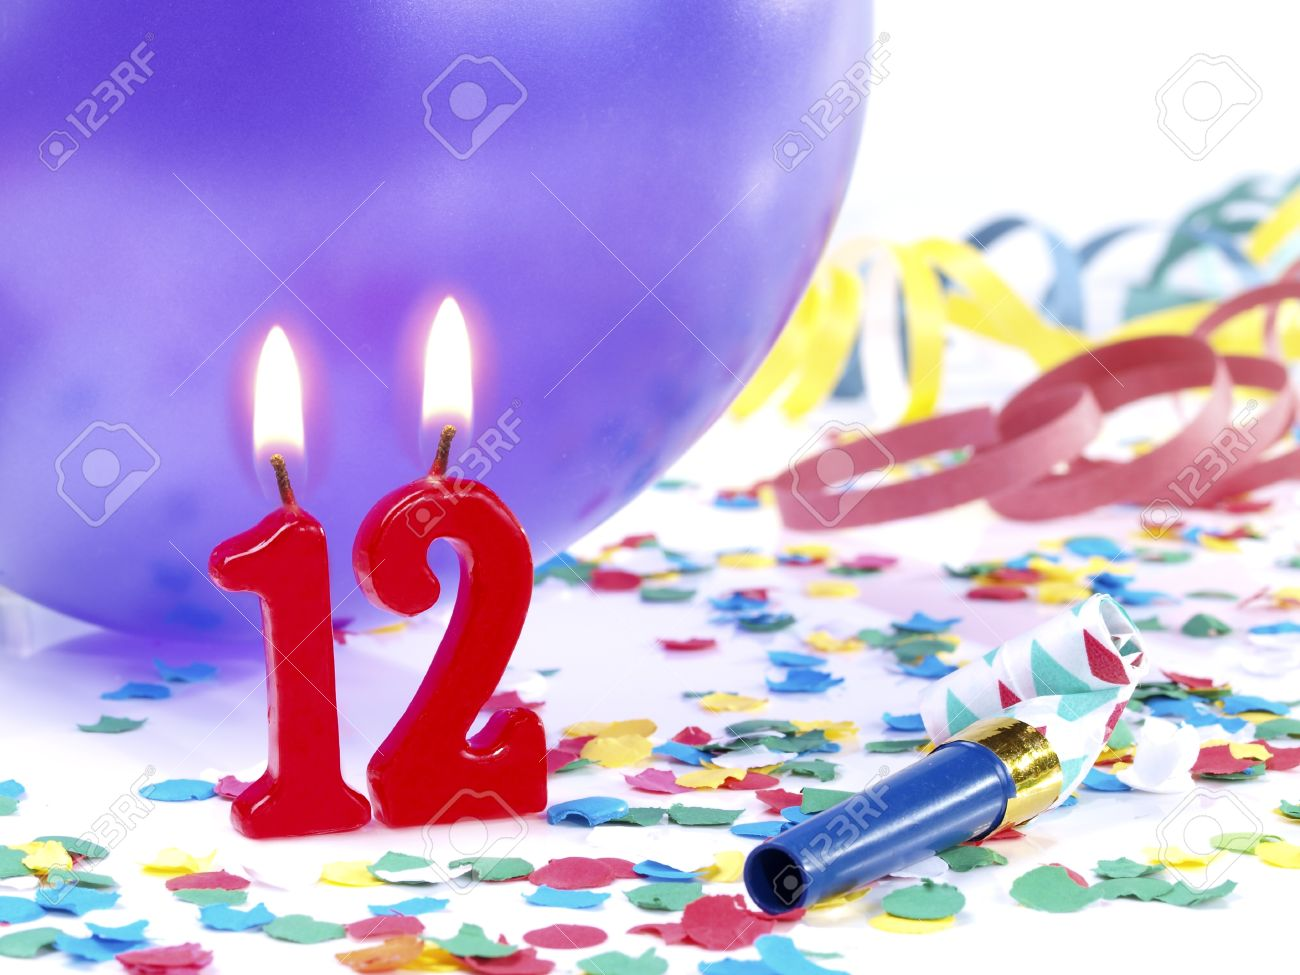 Birthday Candles Showing Nr 12 Stock Photo